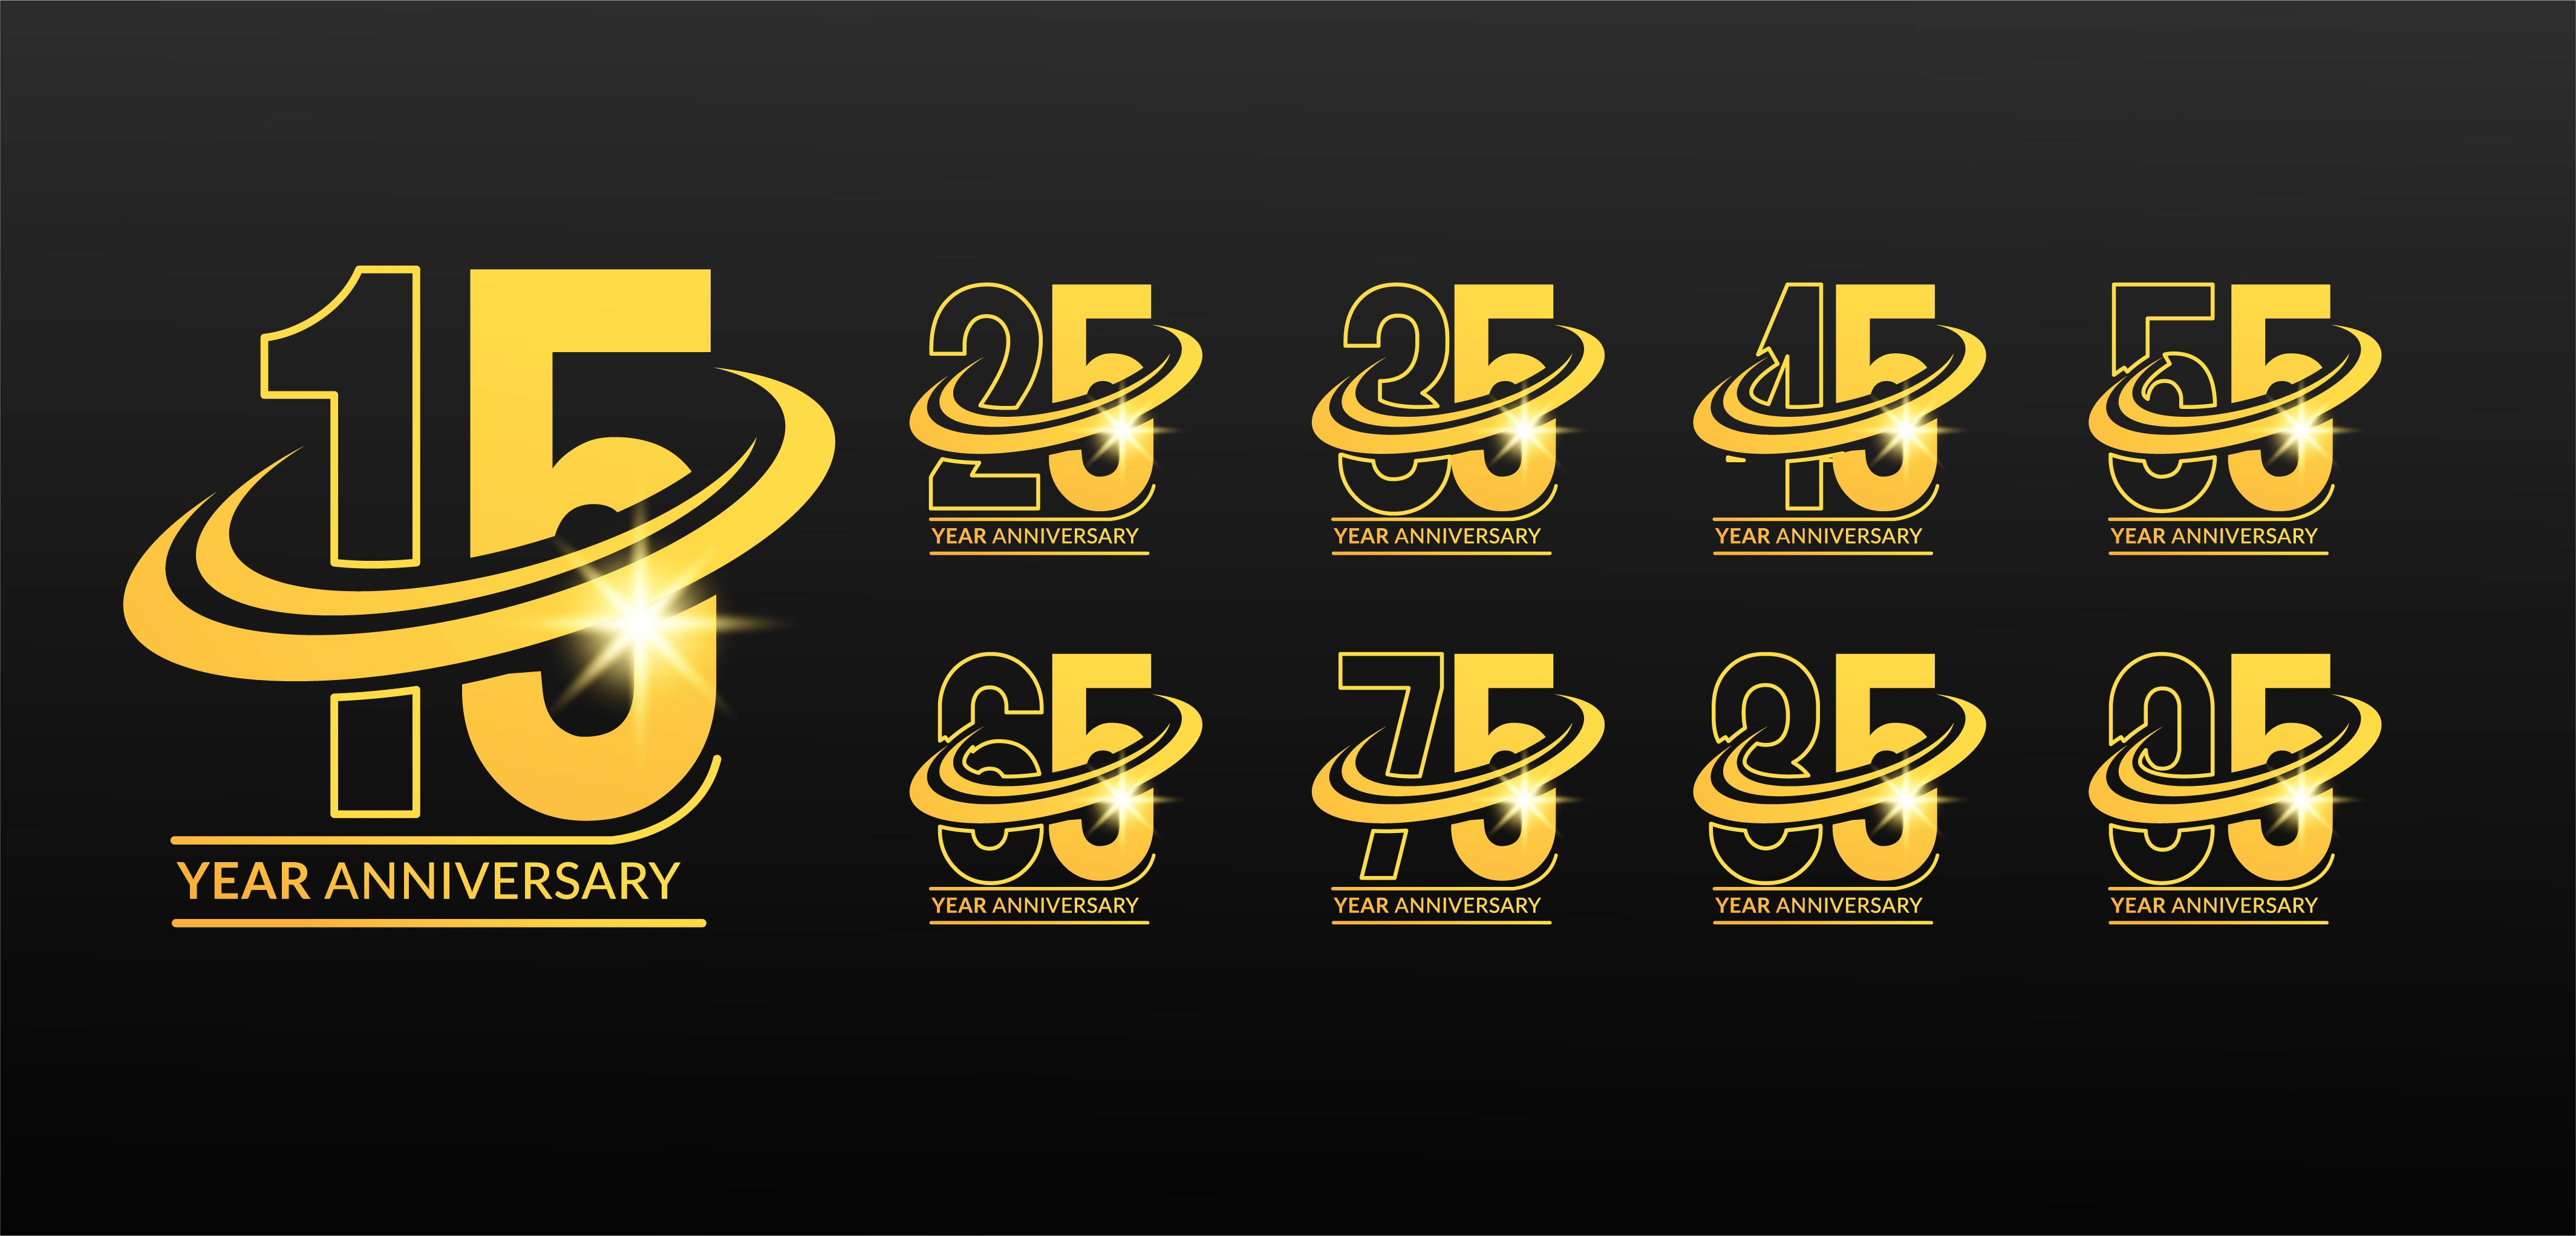 Dynamic Gold Anniversary Numbers with Swoosh Symbol vector